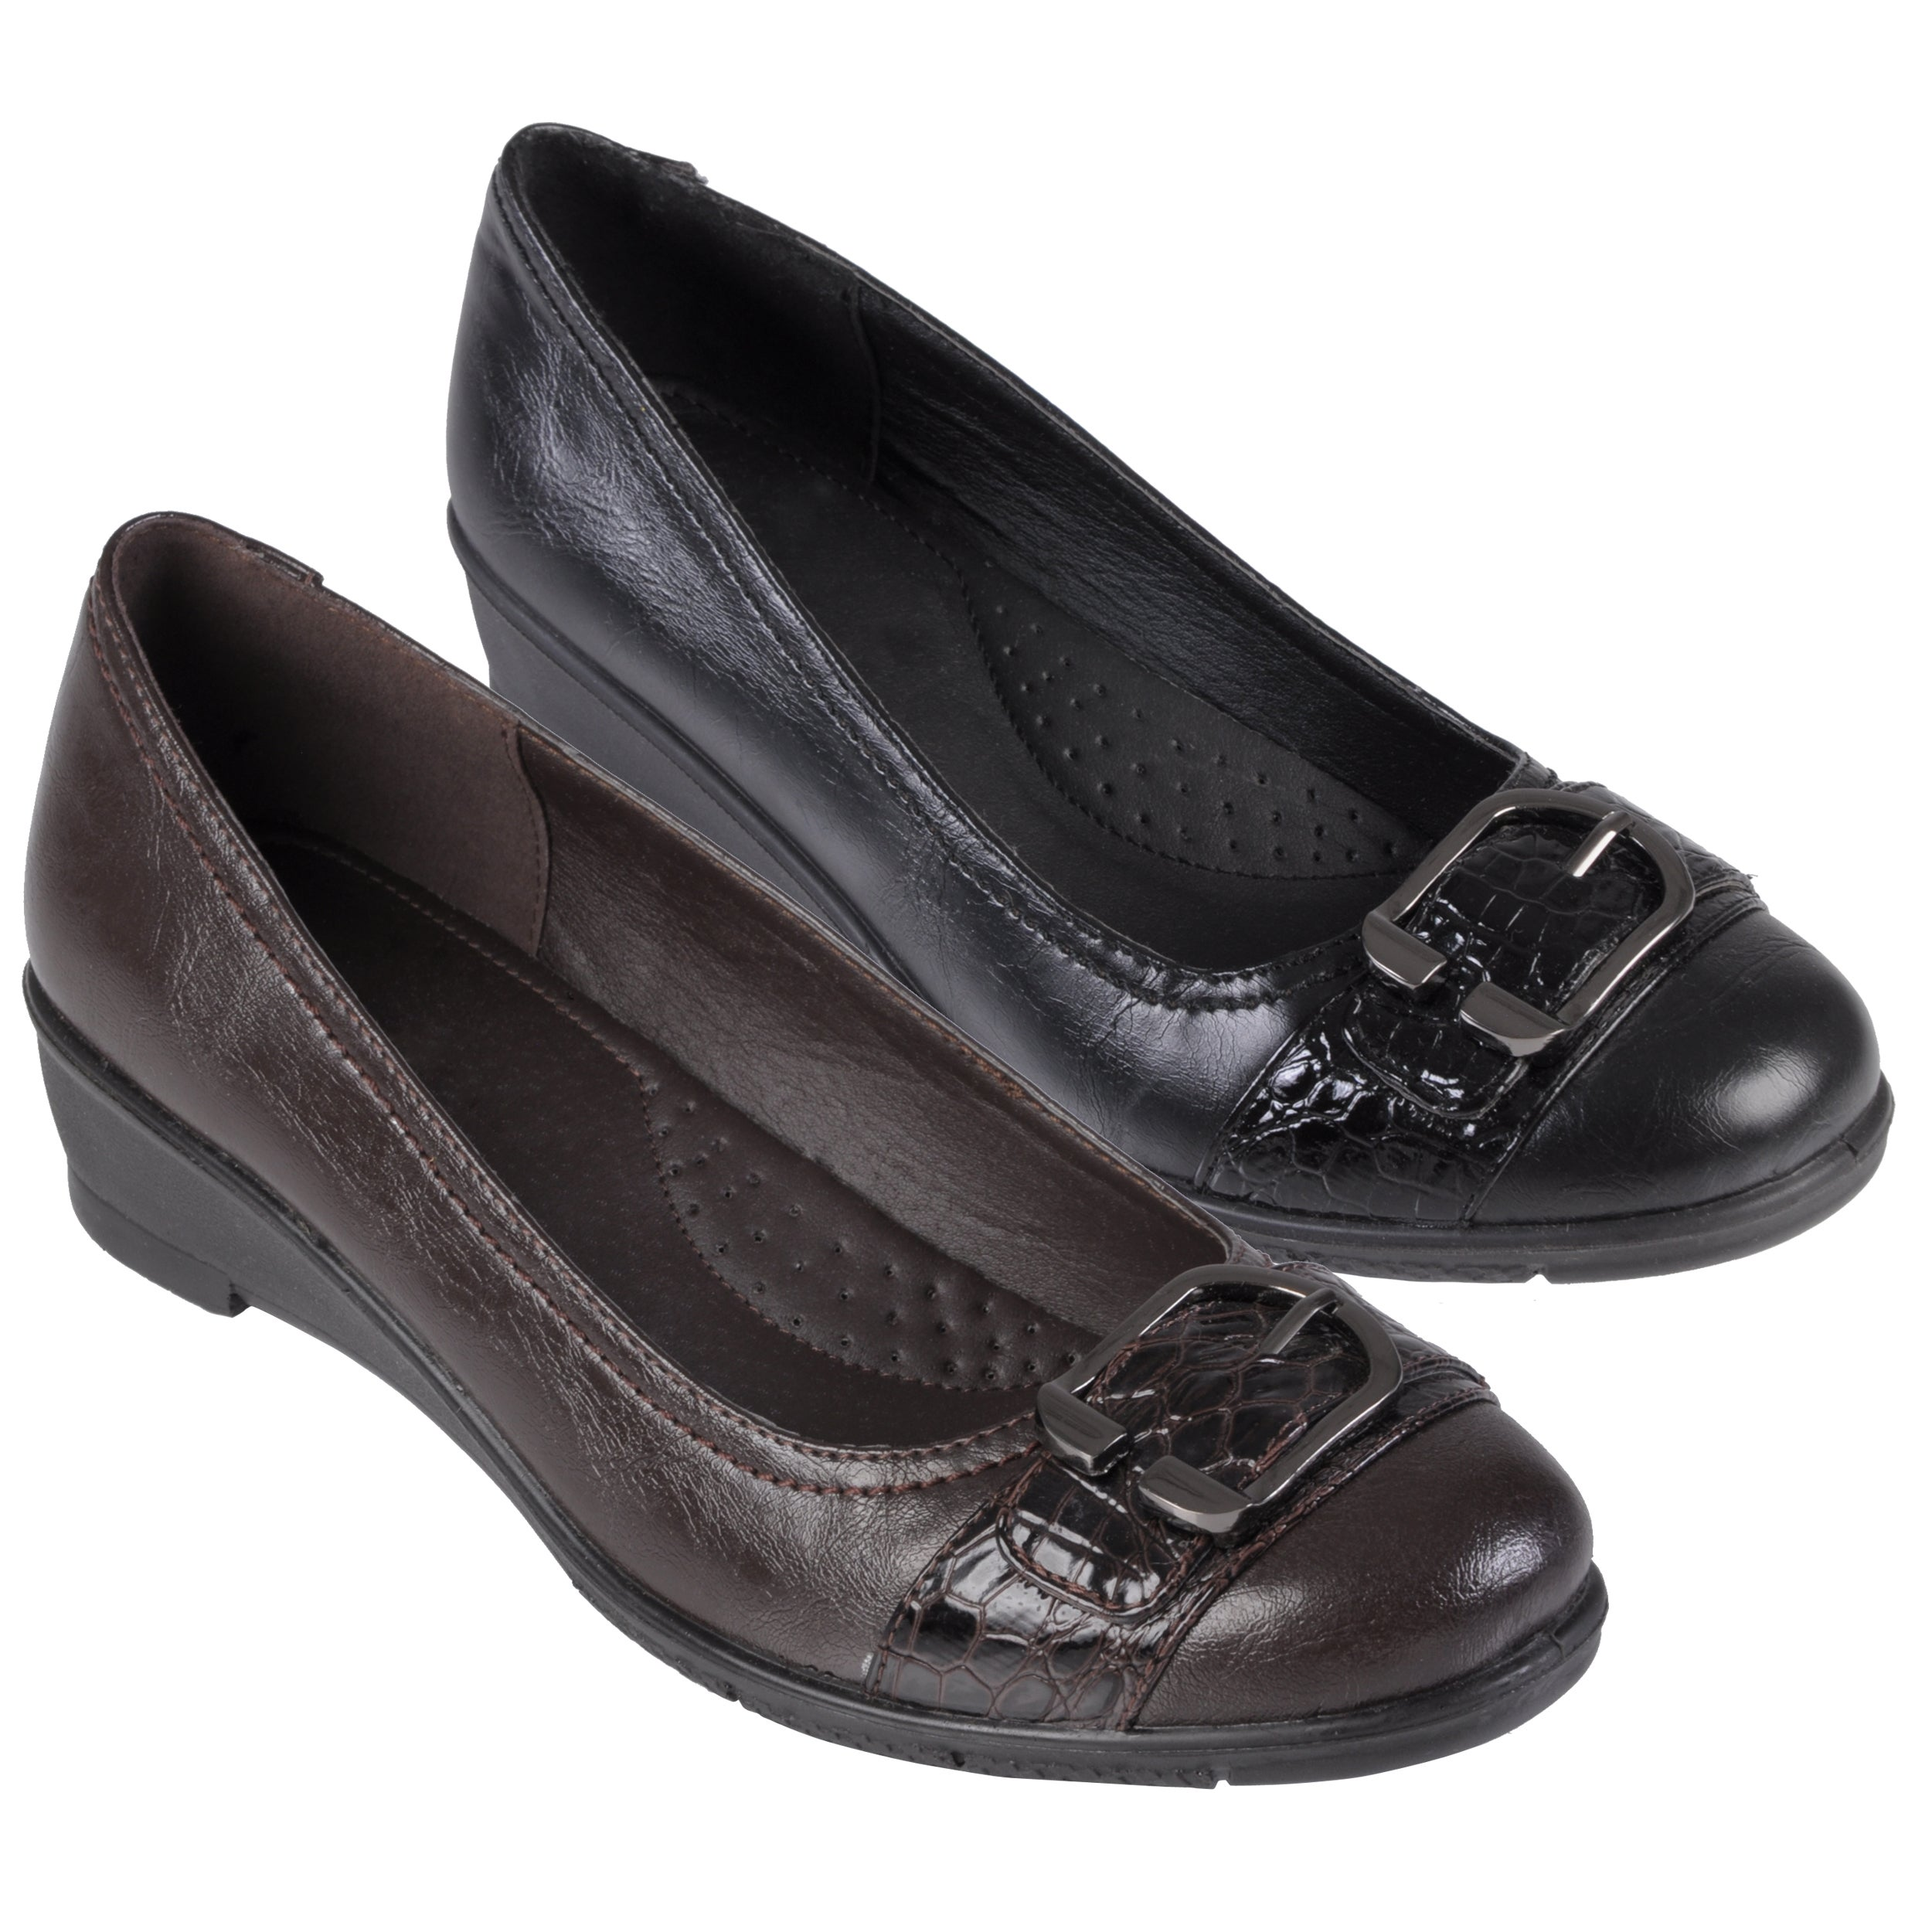 Journee Collection Women's 'Liz-1' Buckle Detail Almond Toe Loafer - Thumbnail 0